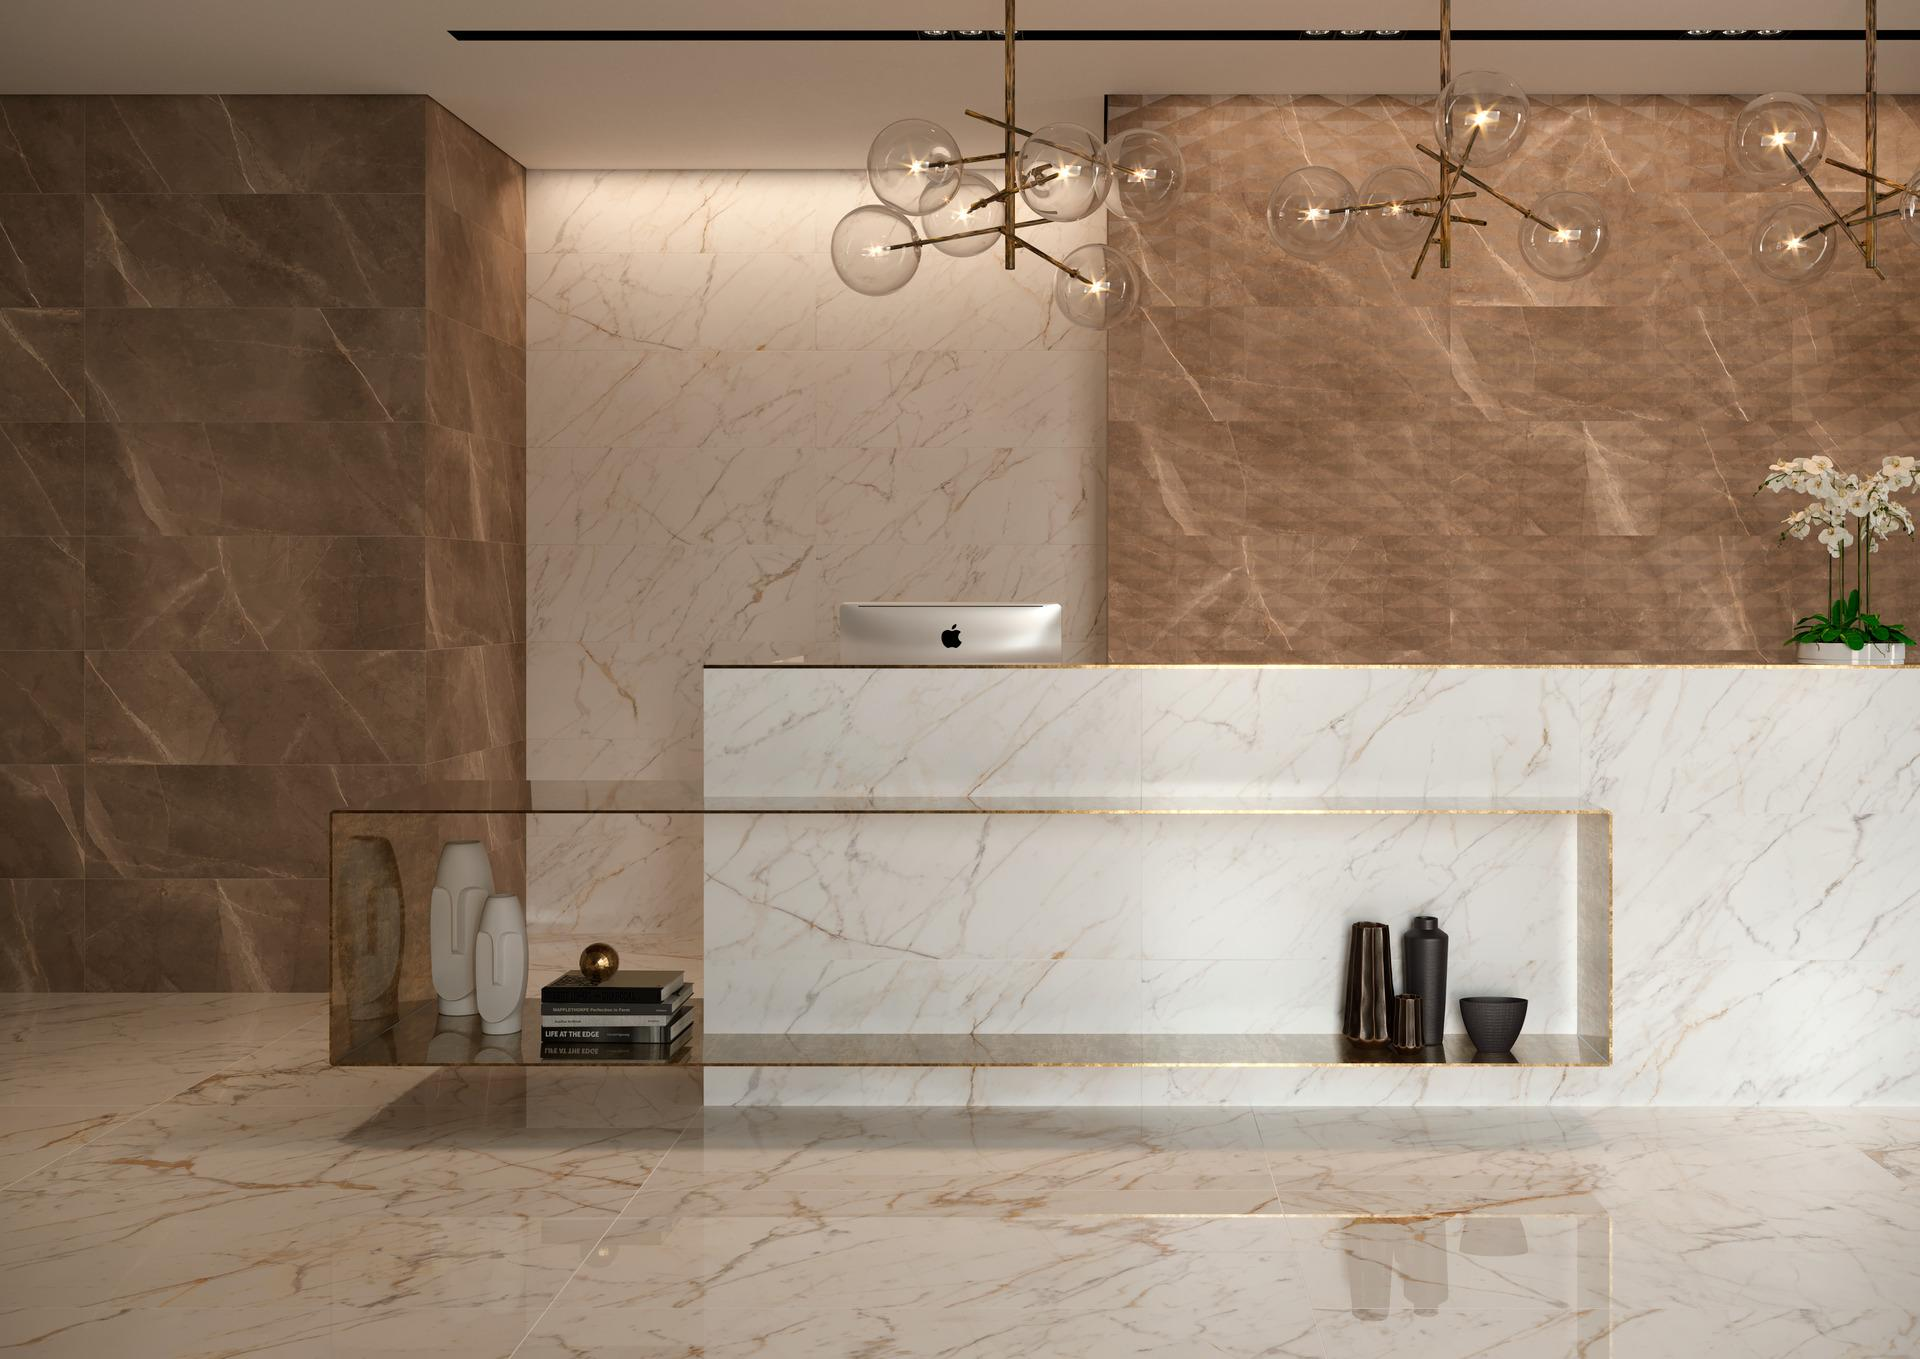 Allmarble wall - Marble Effect - Businesses